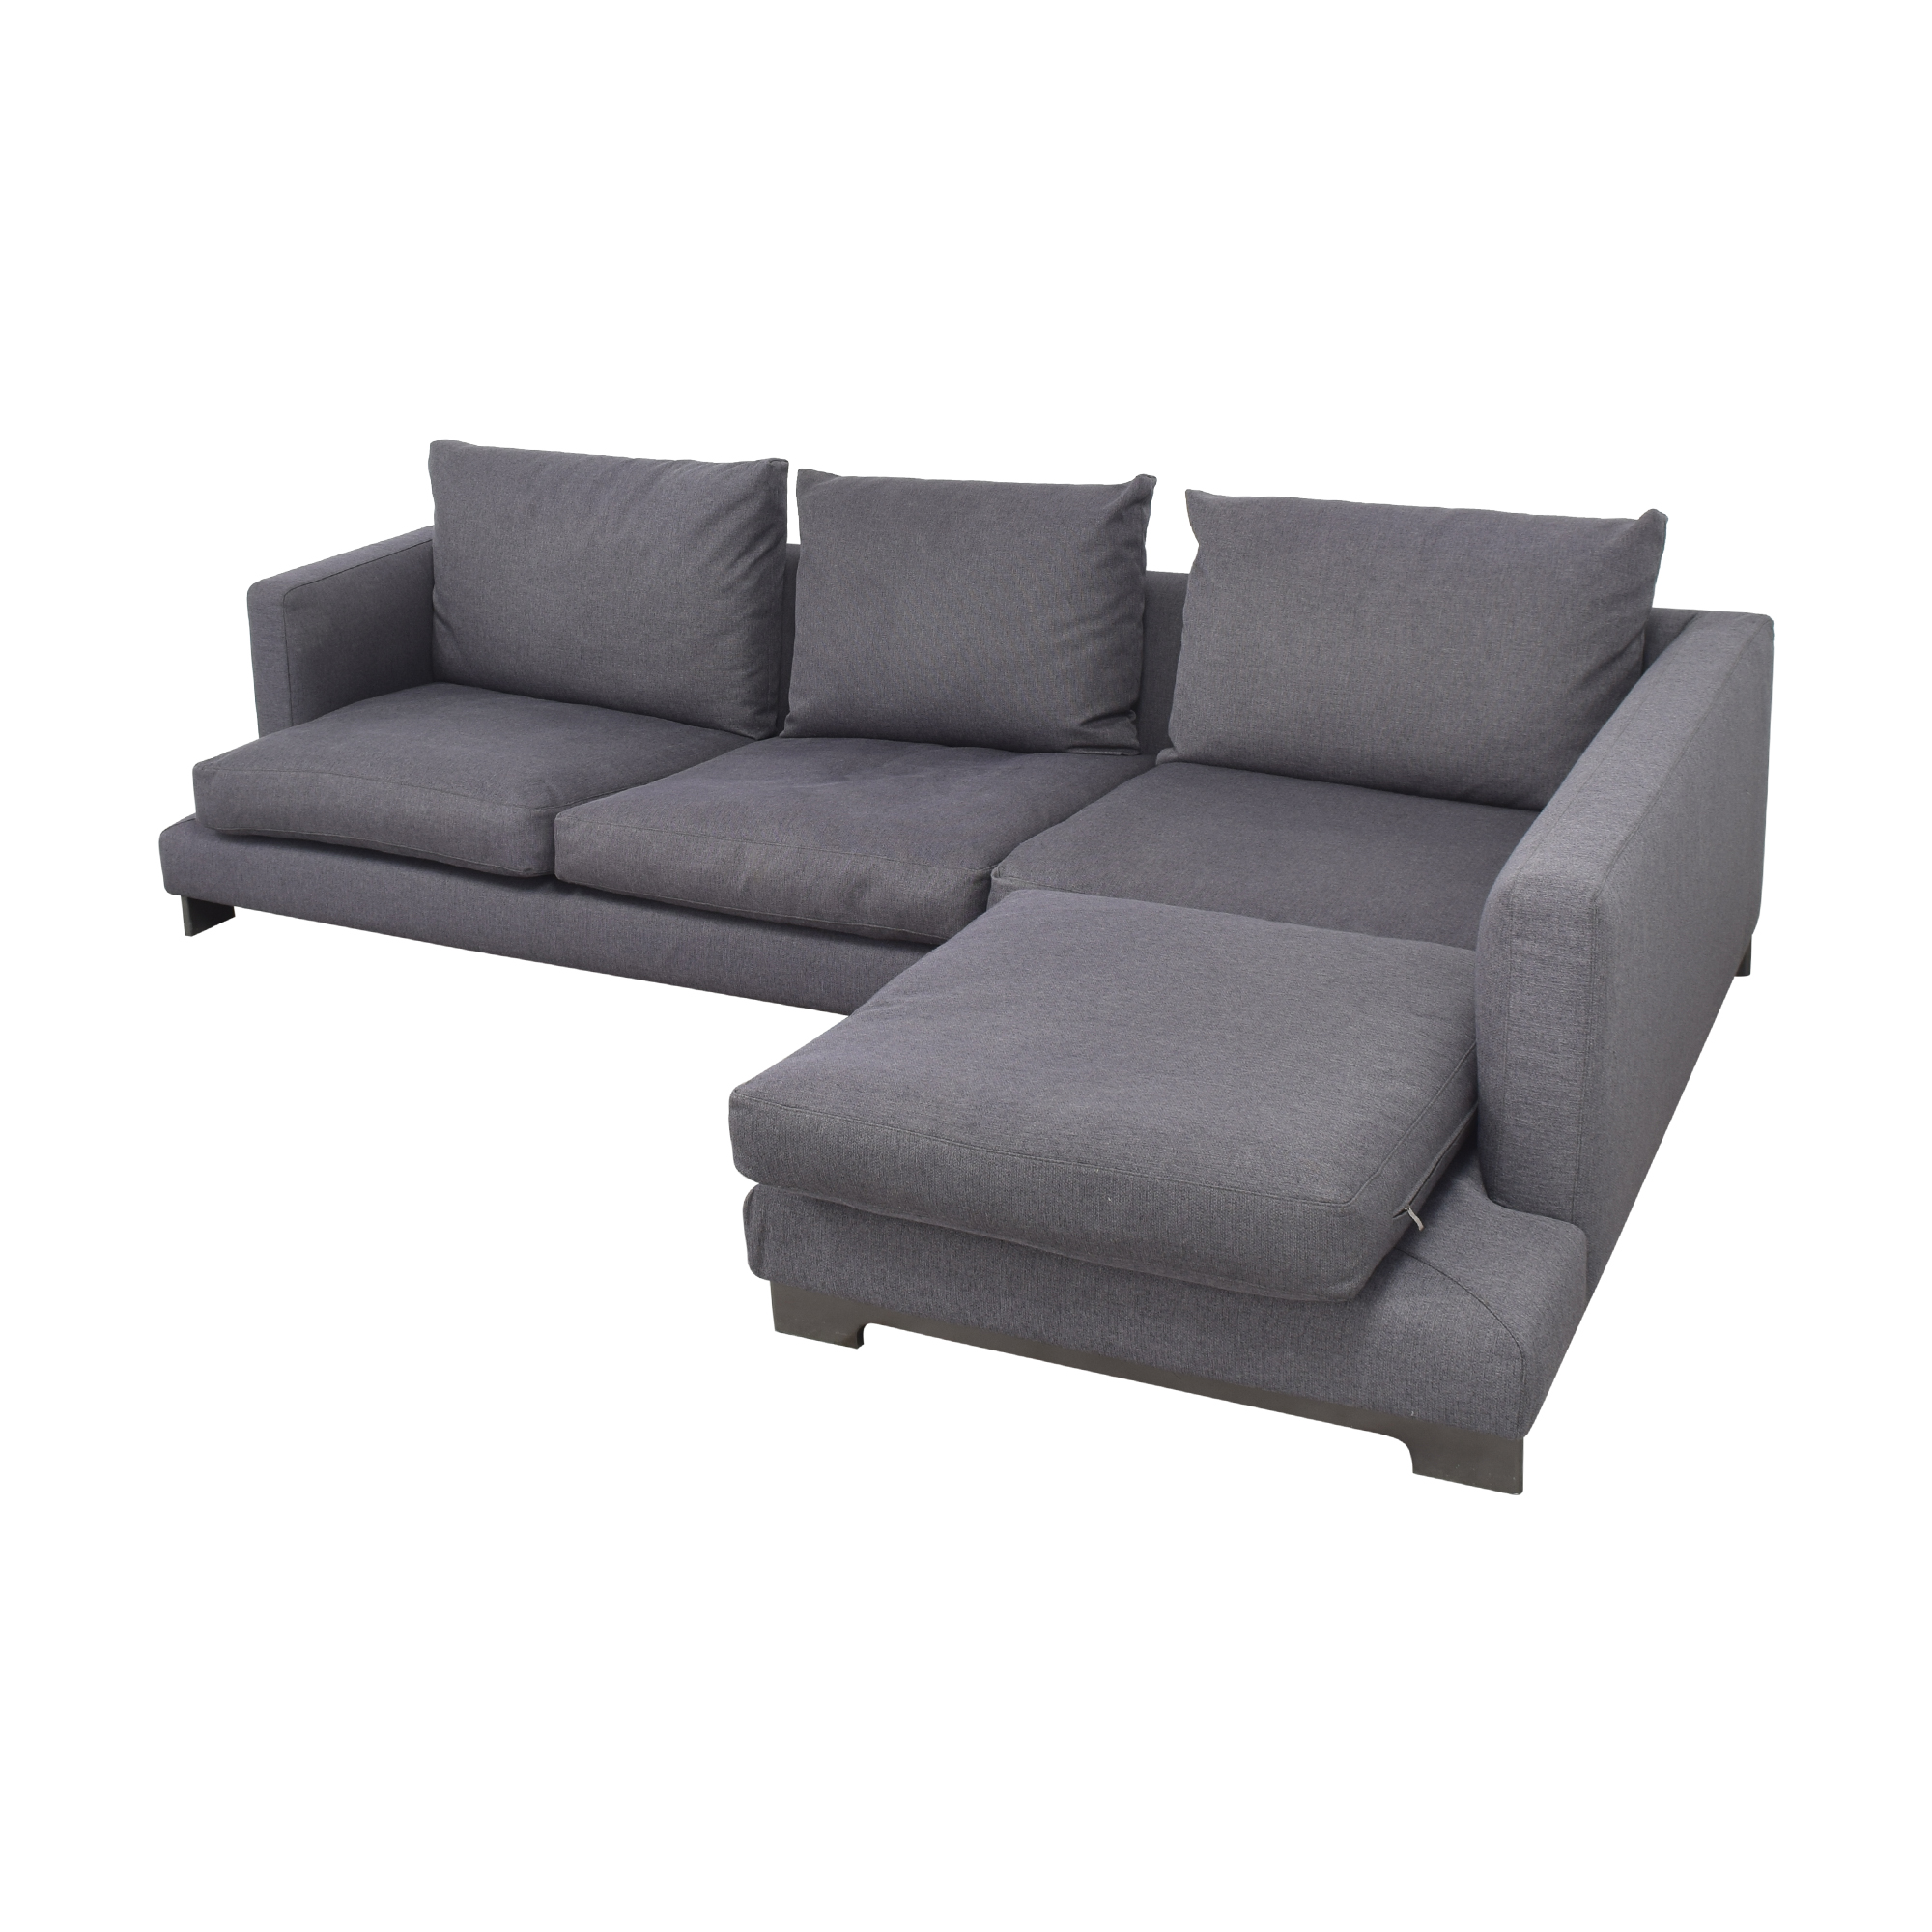 Camerich Lazy Time Chaise Sectional Sofa Camerich